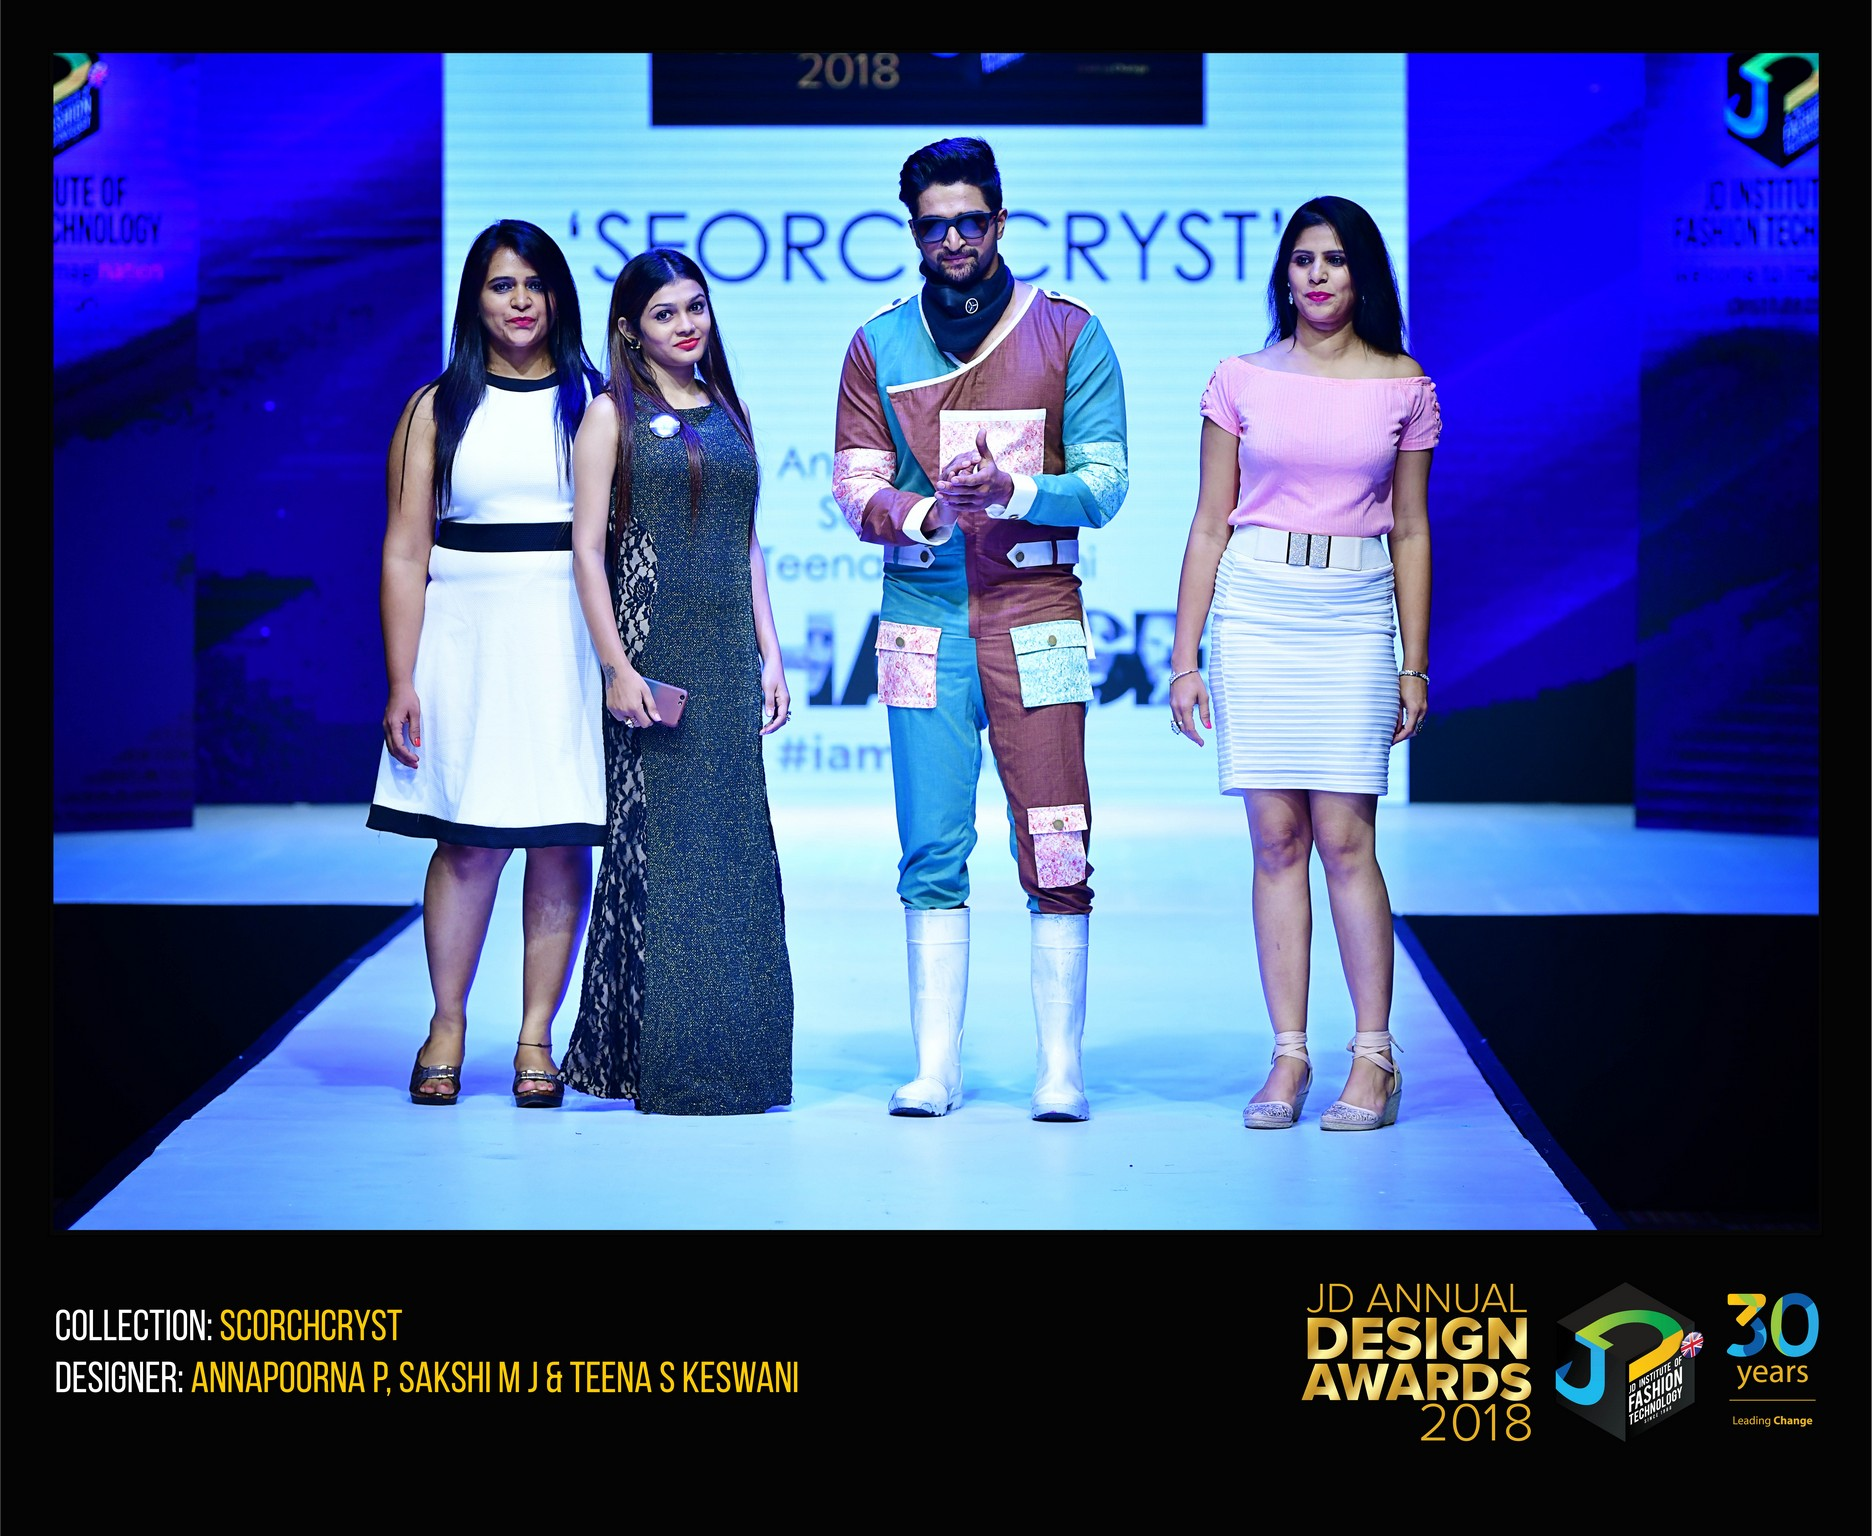 Scorch Cryst – Change – JD Annual Design Awards 2018 | Designer: Annapoorna, Ishika and Teena | Photography : Jerin Nath (@jerin_nath) scorch cryst - SCORCHCRYST 11 - Scorch Cryst – Change – JD Annual Design Awards 2018